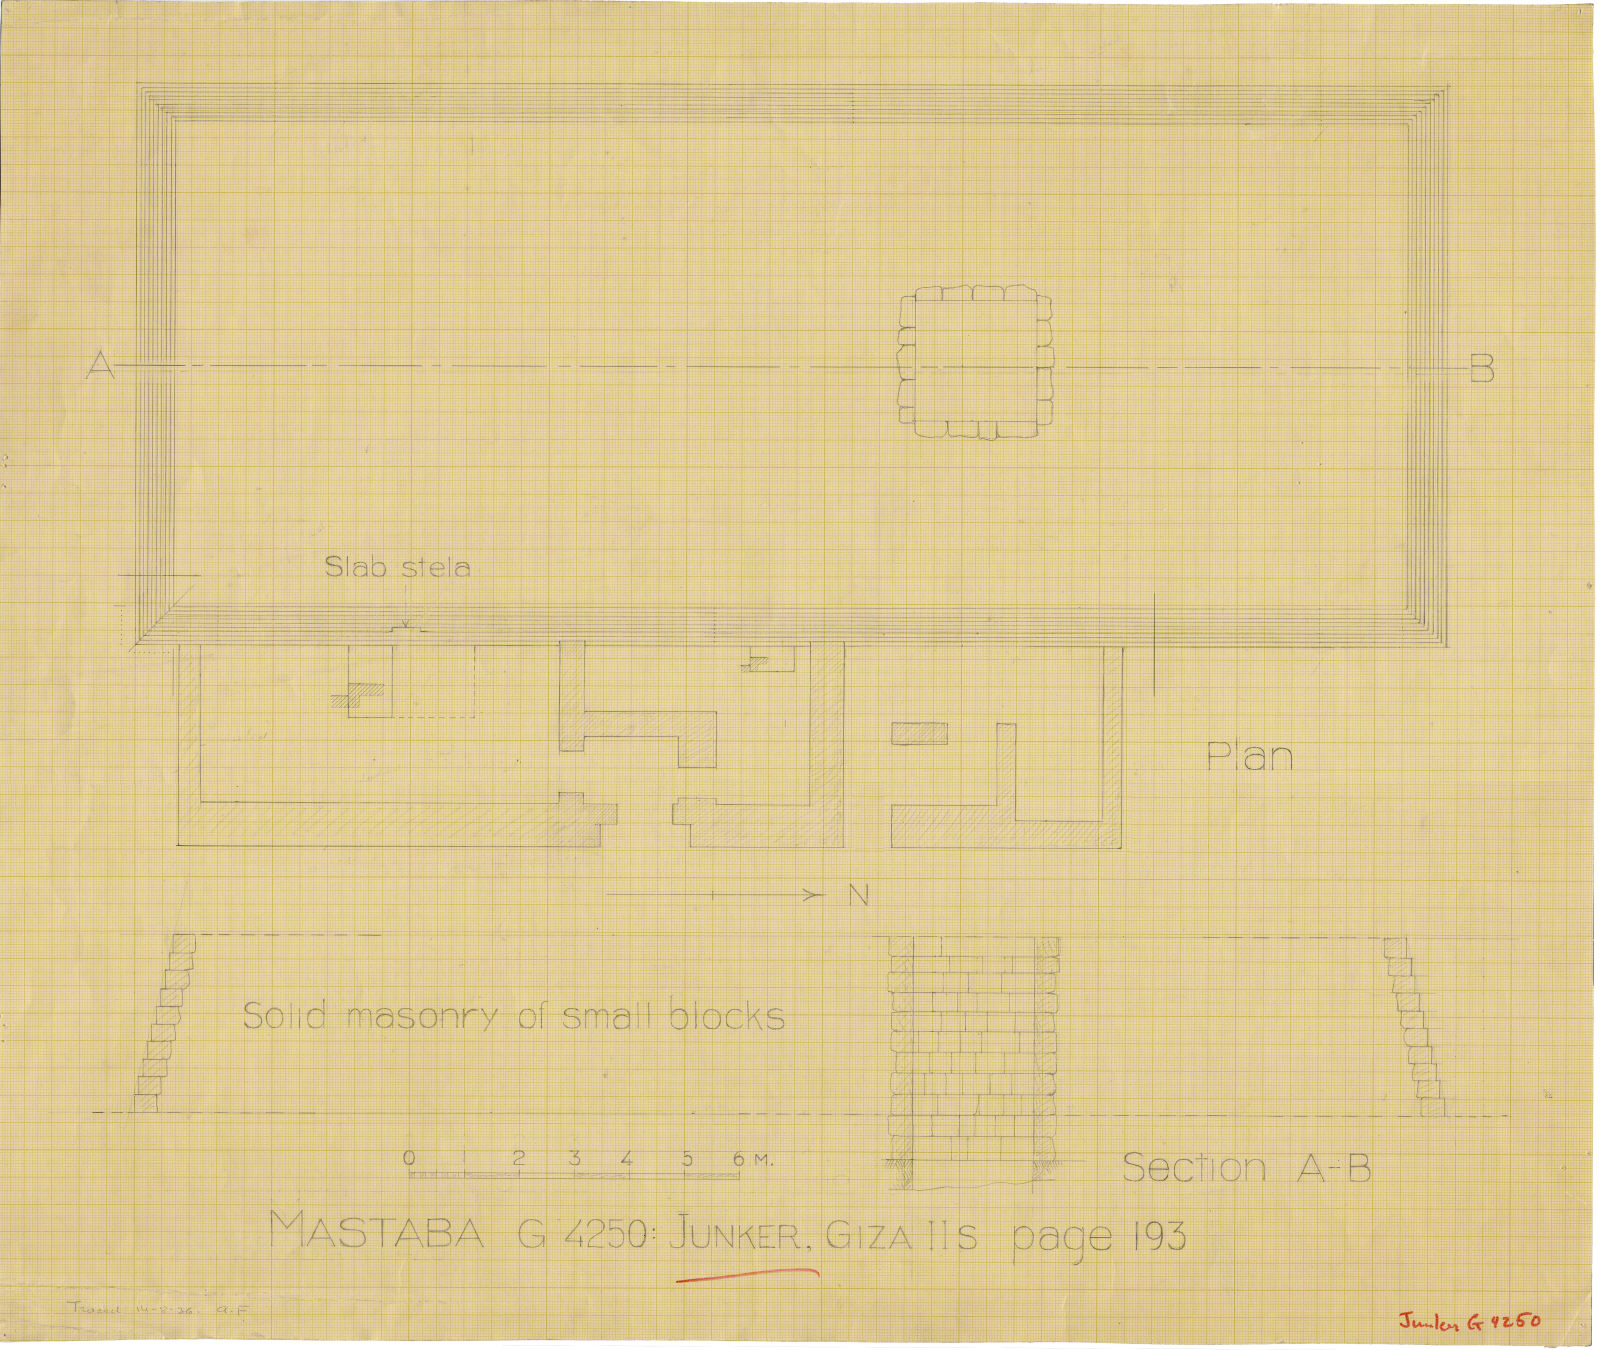 Maps and plans: G 4250, Plan and section